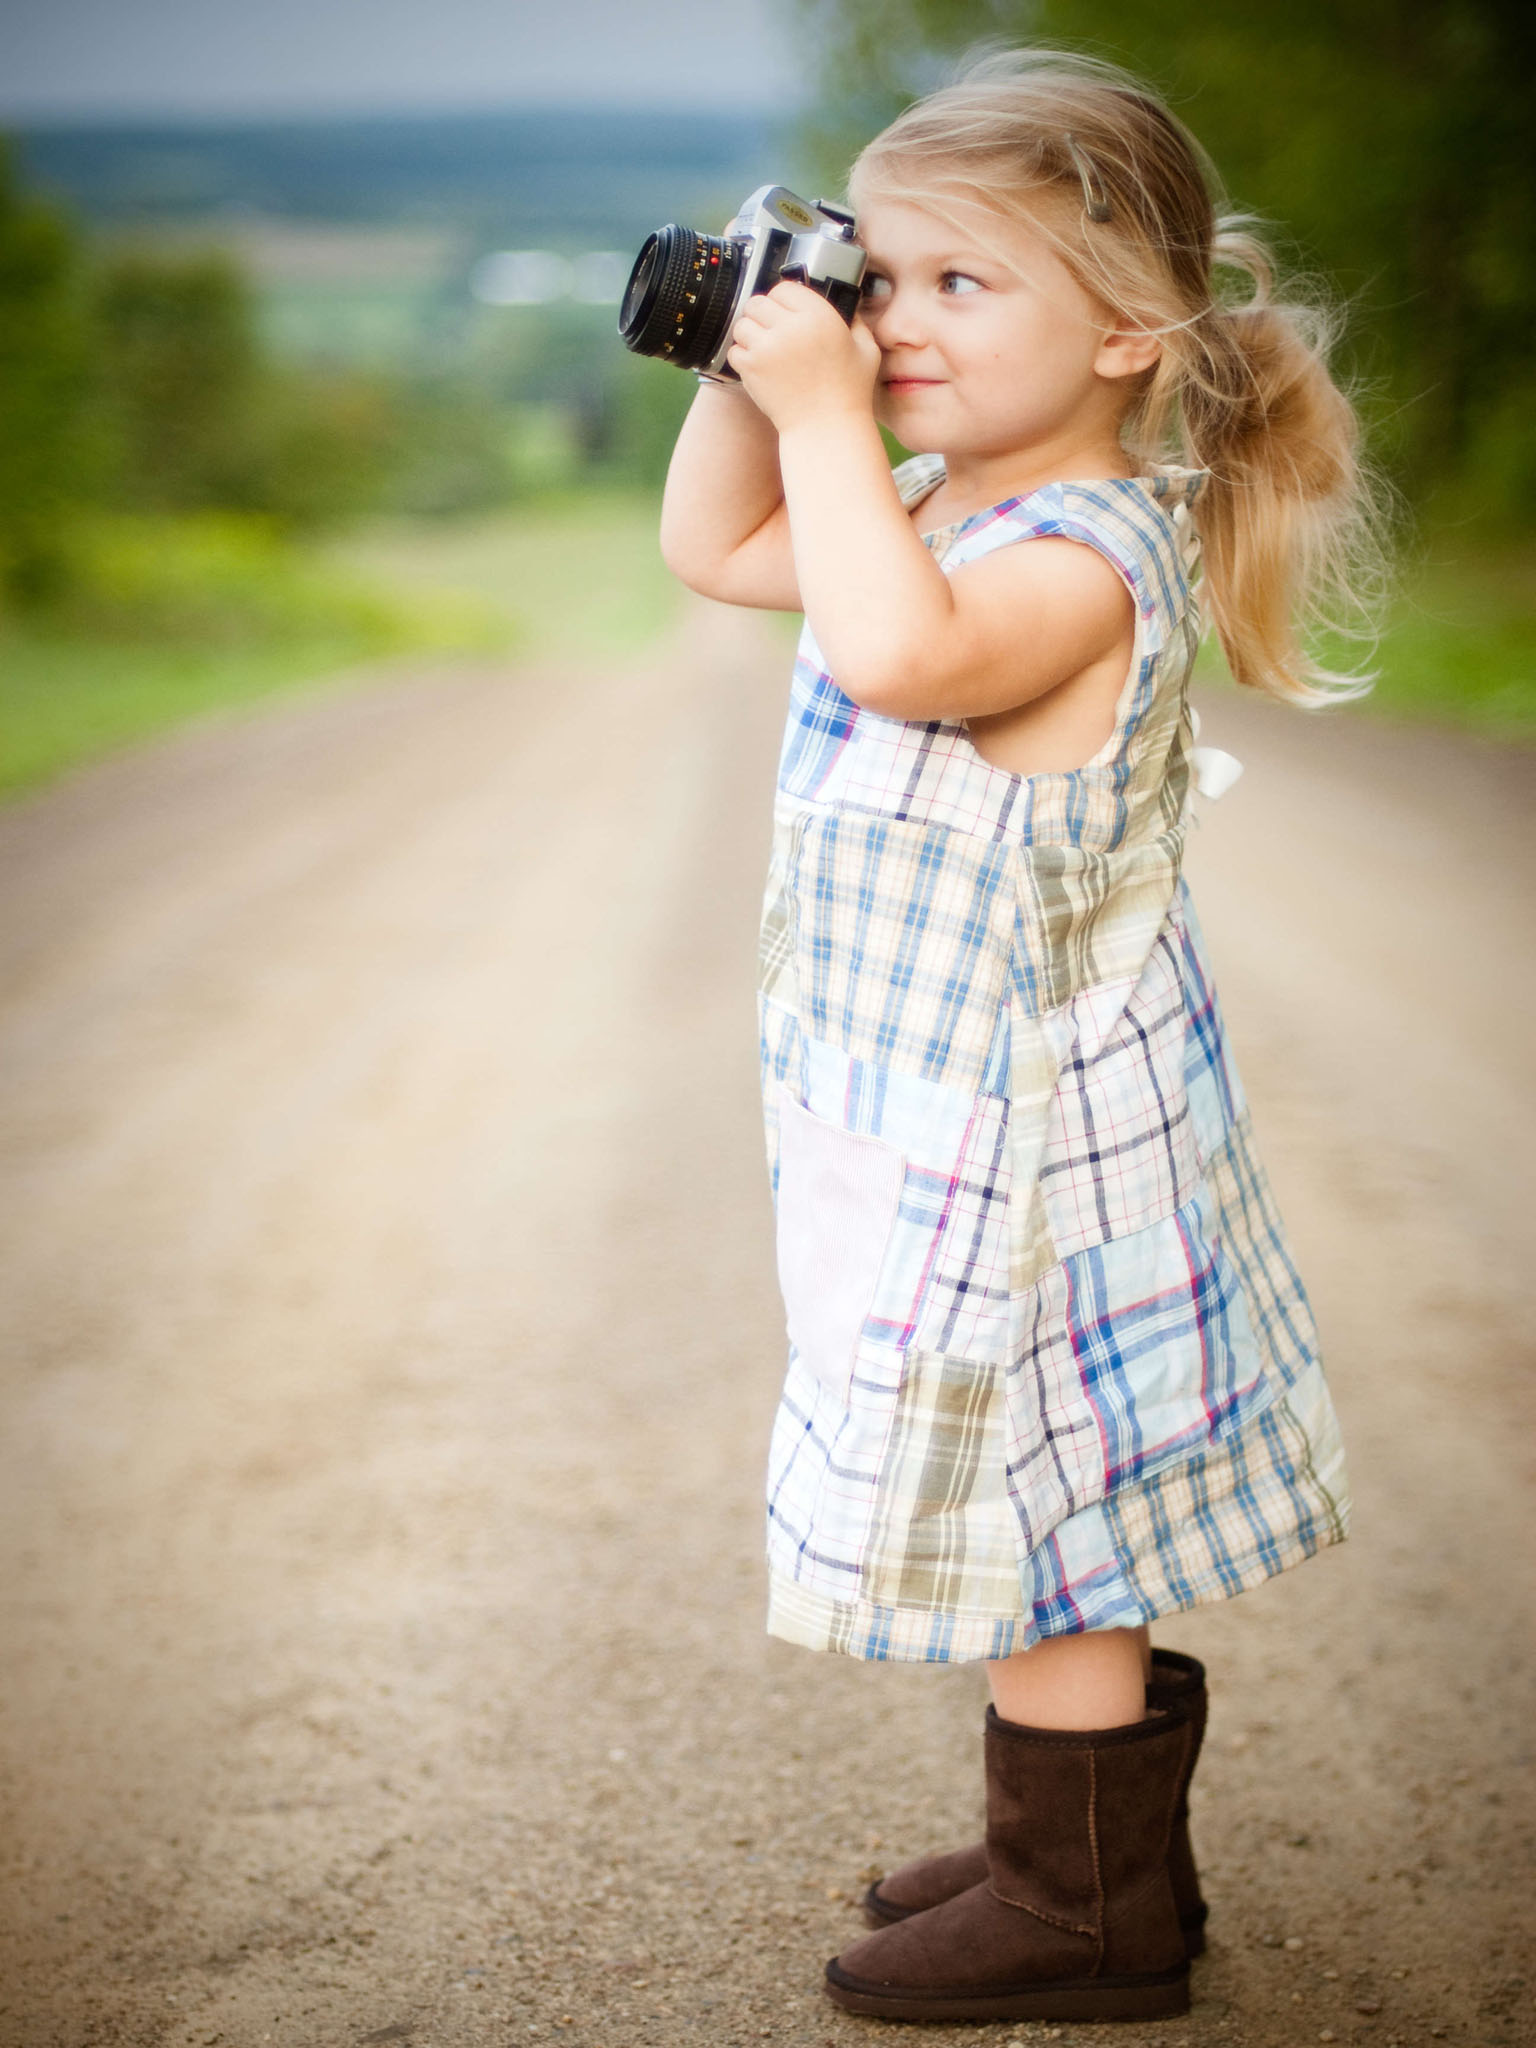 Cute Little Camera Girl